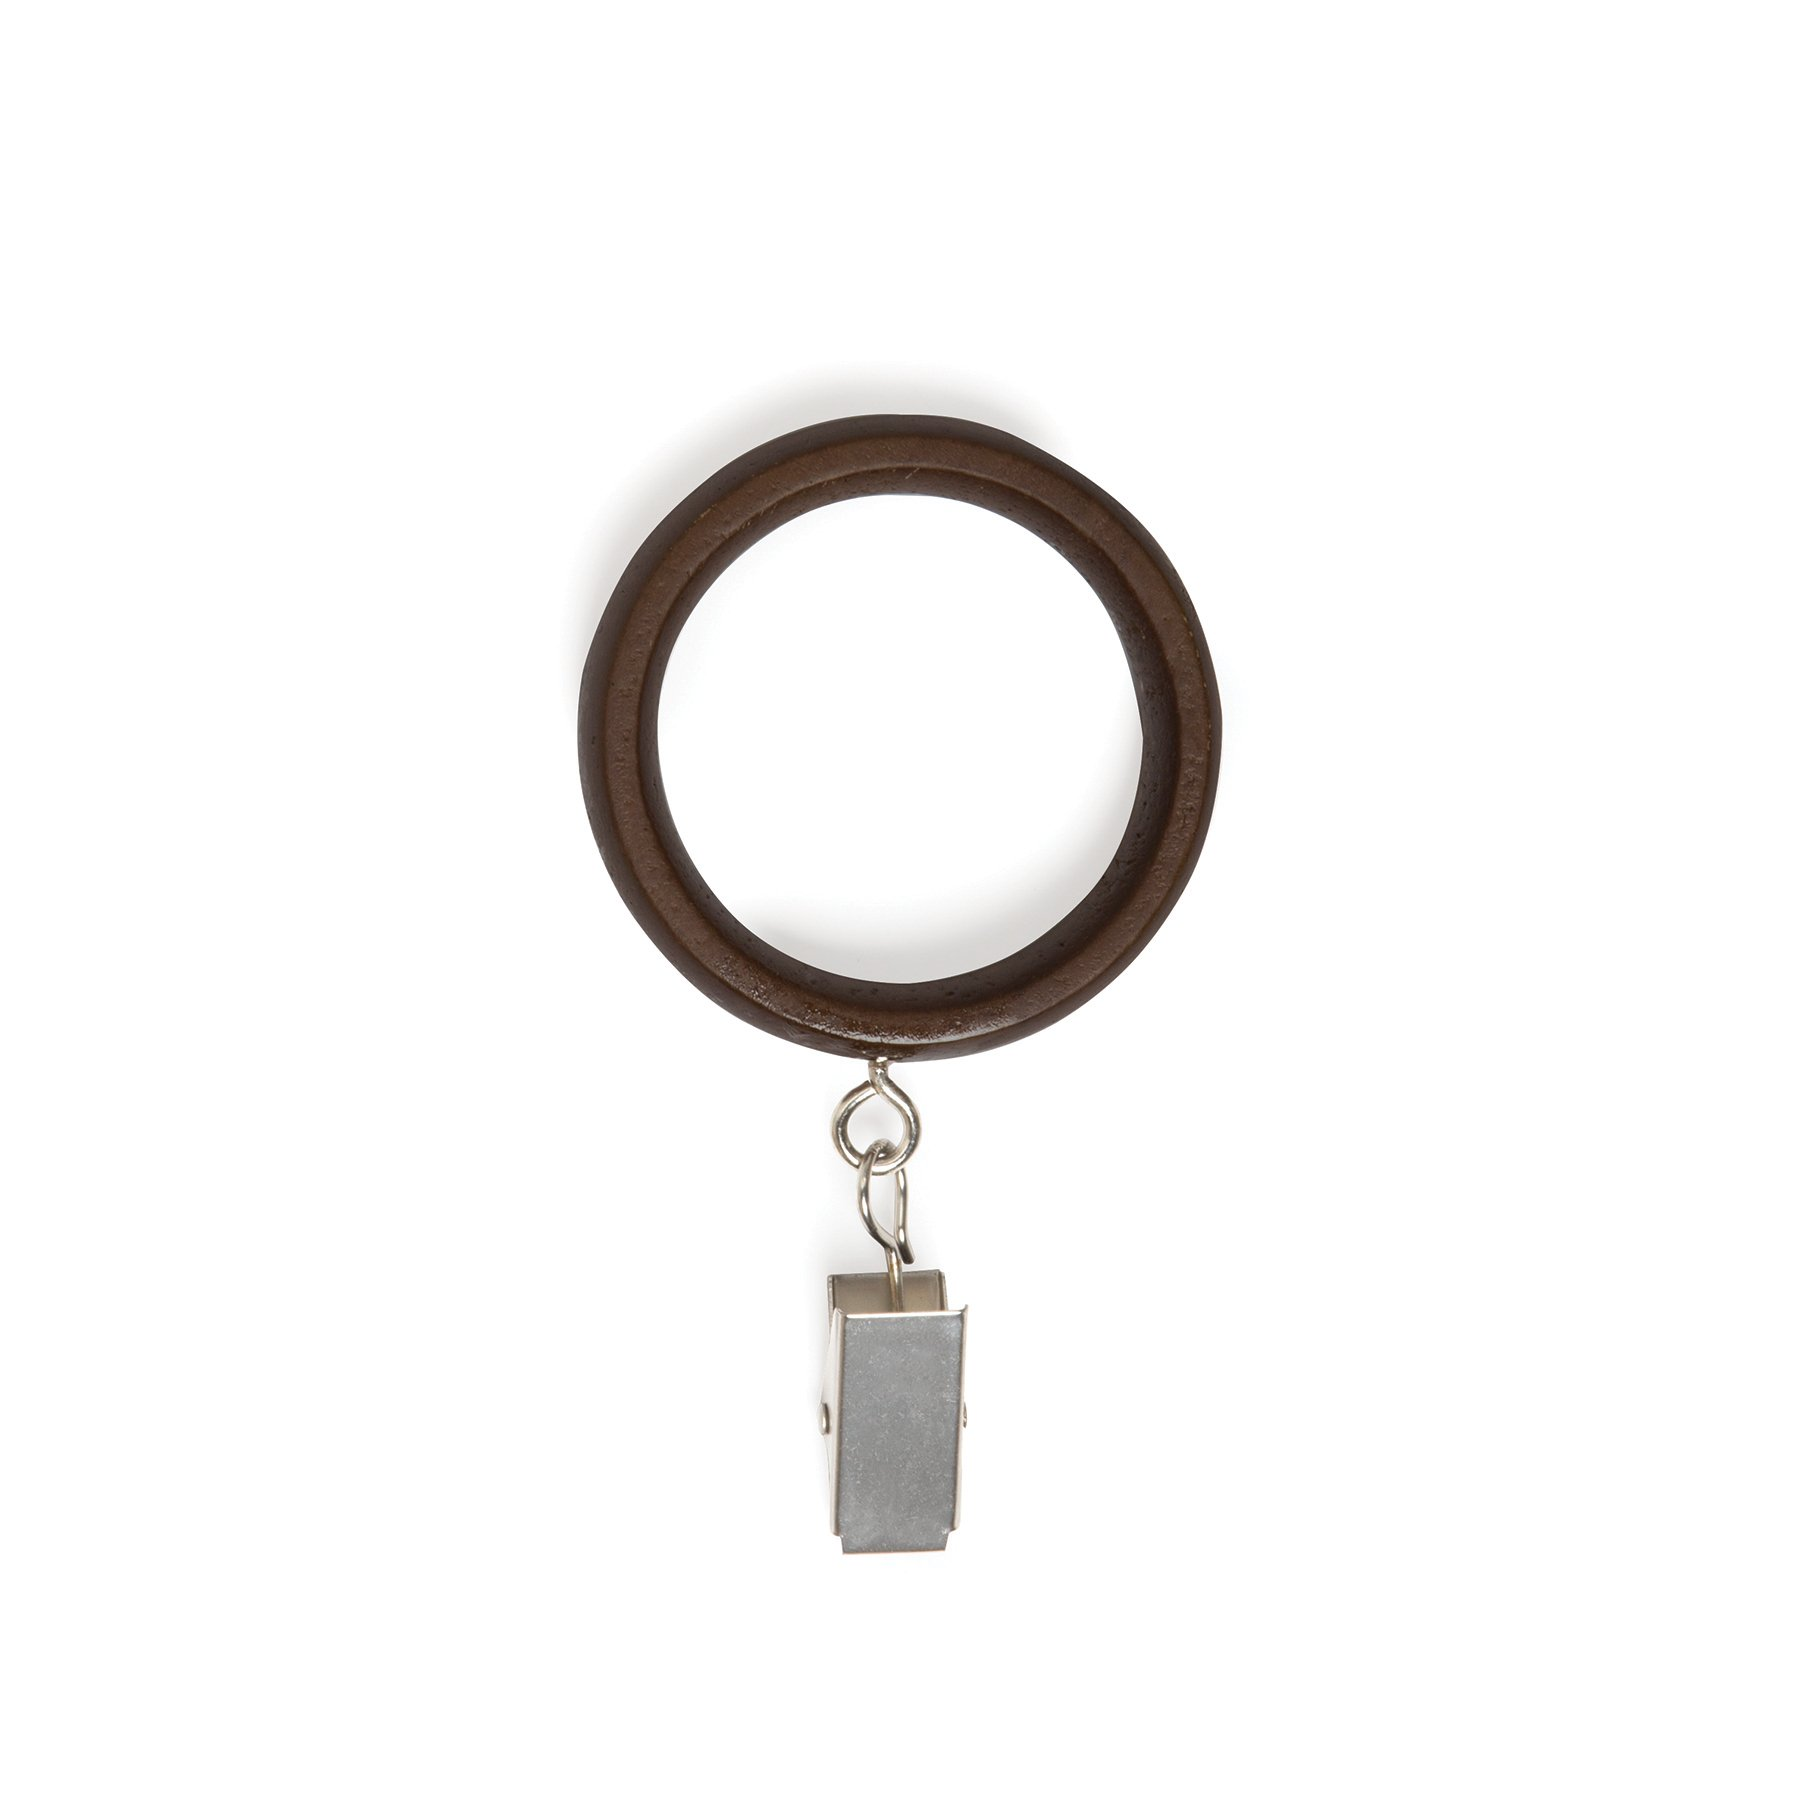 Umbra Wood Extra Drapery Ring with Clips, X-Large, Aged Walnut/Nickel